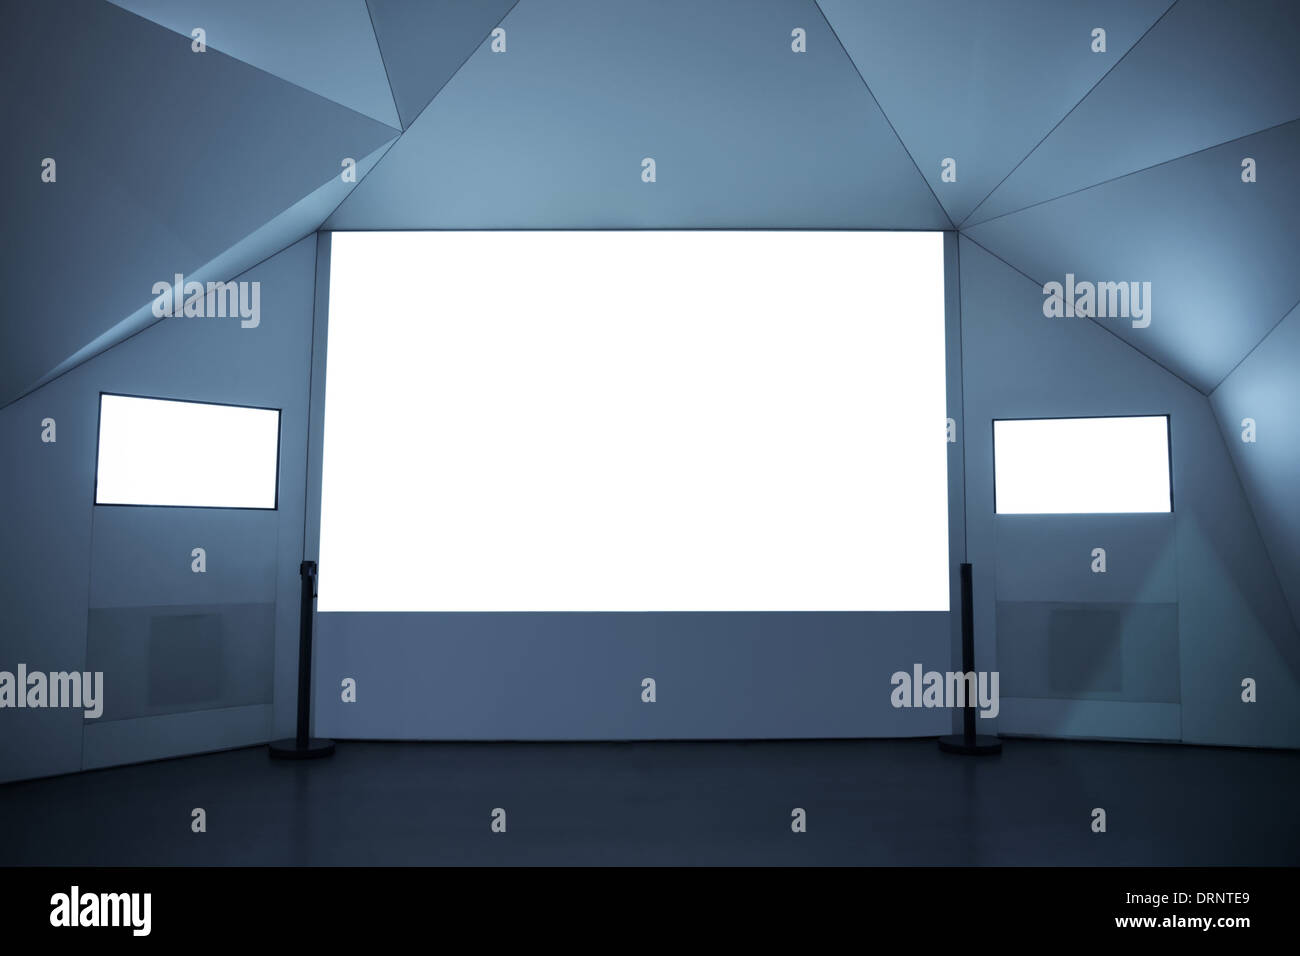 blank projection screen - Stock Image